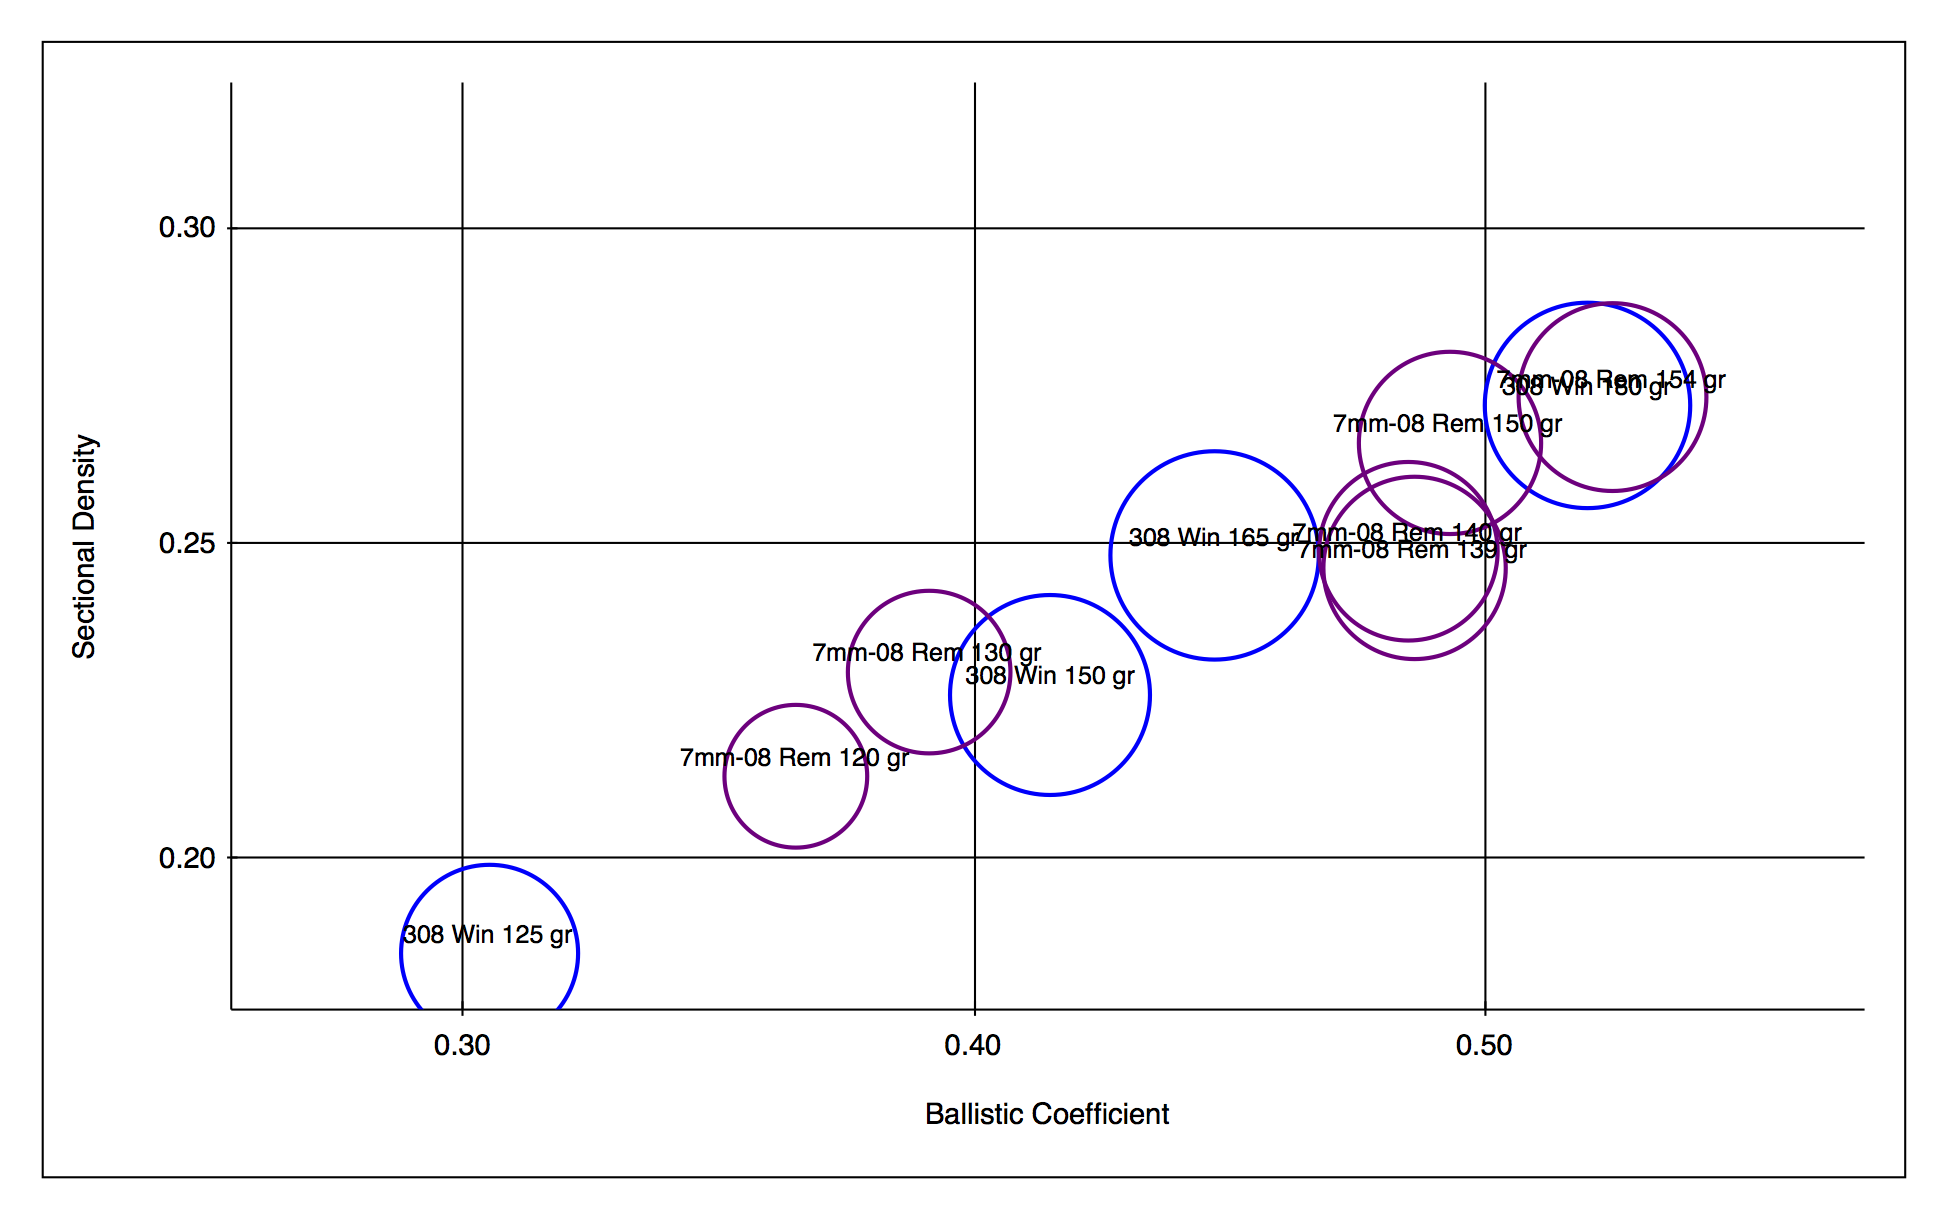 File:Sectional Density vs Ballistic Coefficient of some 7mm